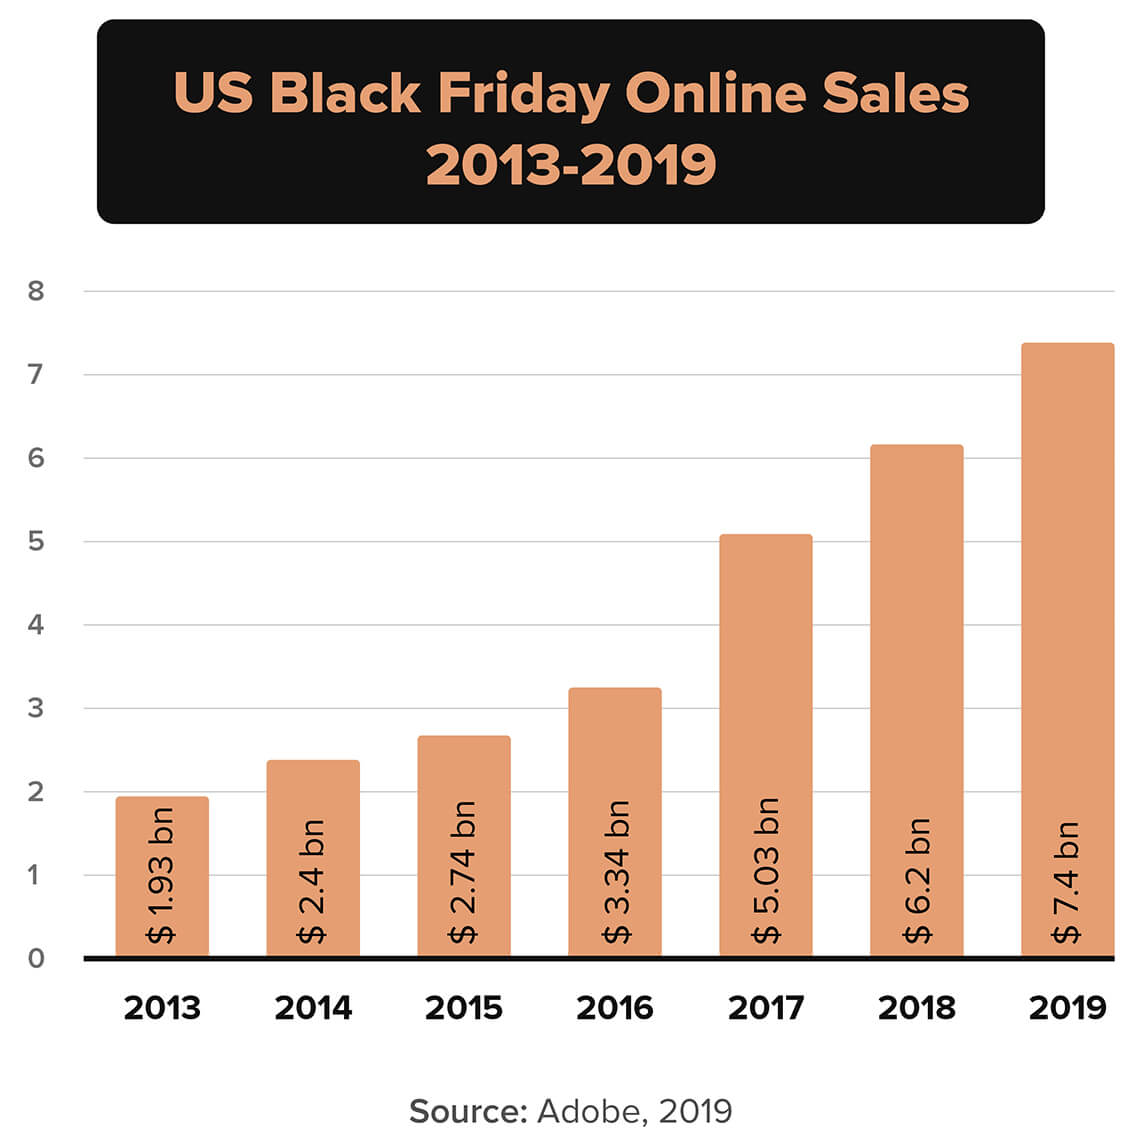 chart showing Black Friday sales from 2013-2019